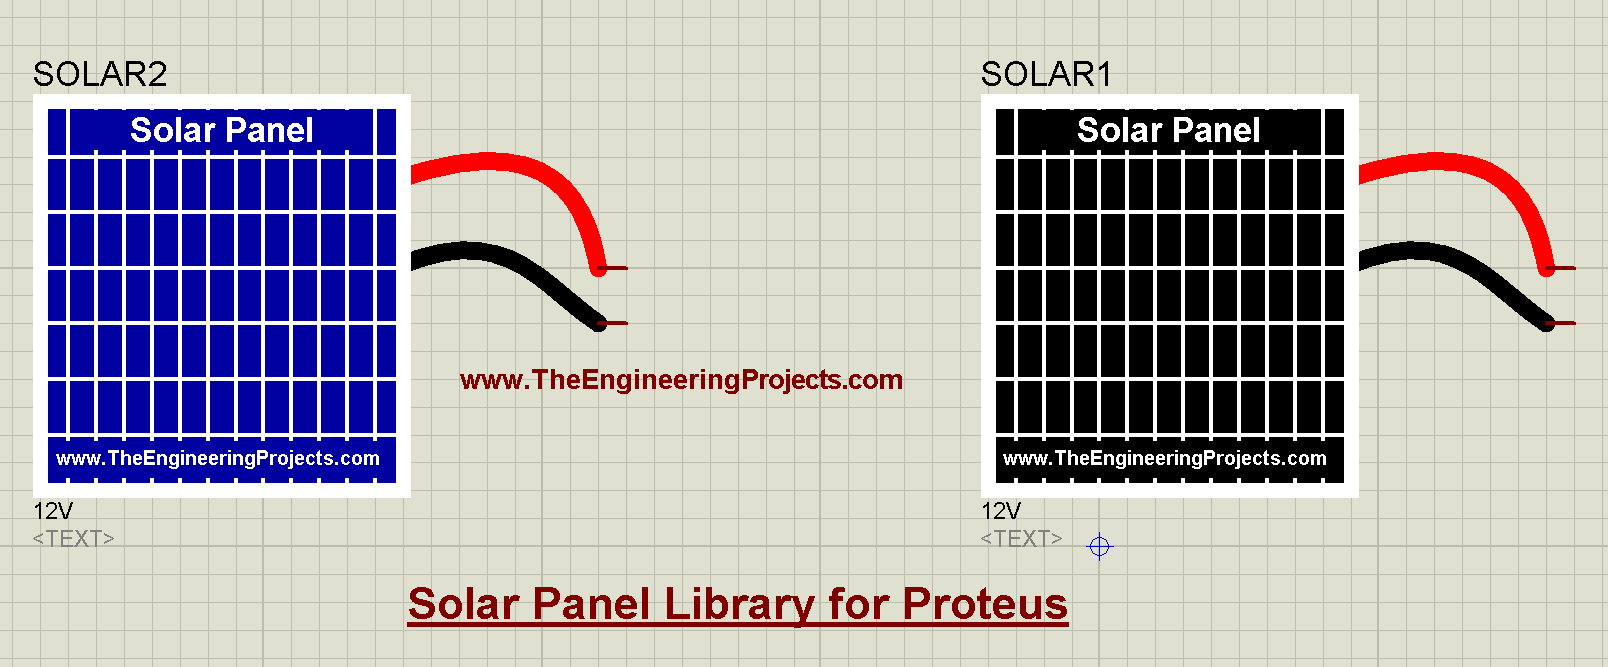 Solar Panel Library for Proteus, Solar Panel in Proteus, Solar Panel Library Proteus, Solar Panel Proteus, Solar Panel Proteus simulation, Proteus Solar Panel, Proteus simulation of Solar Panel